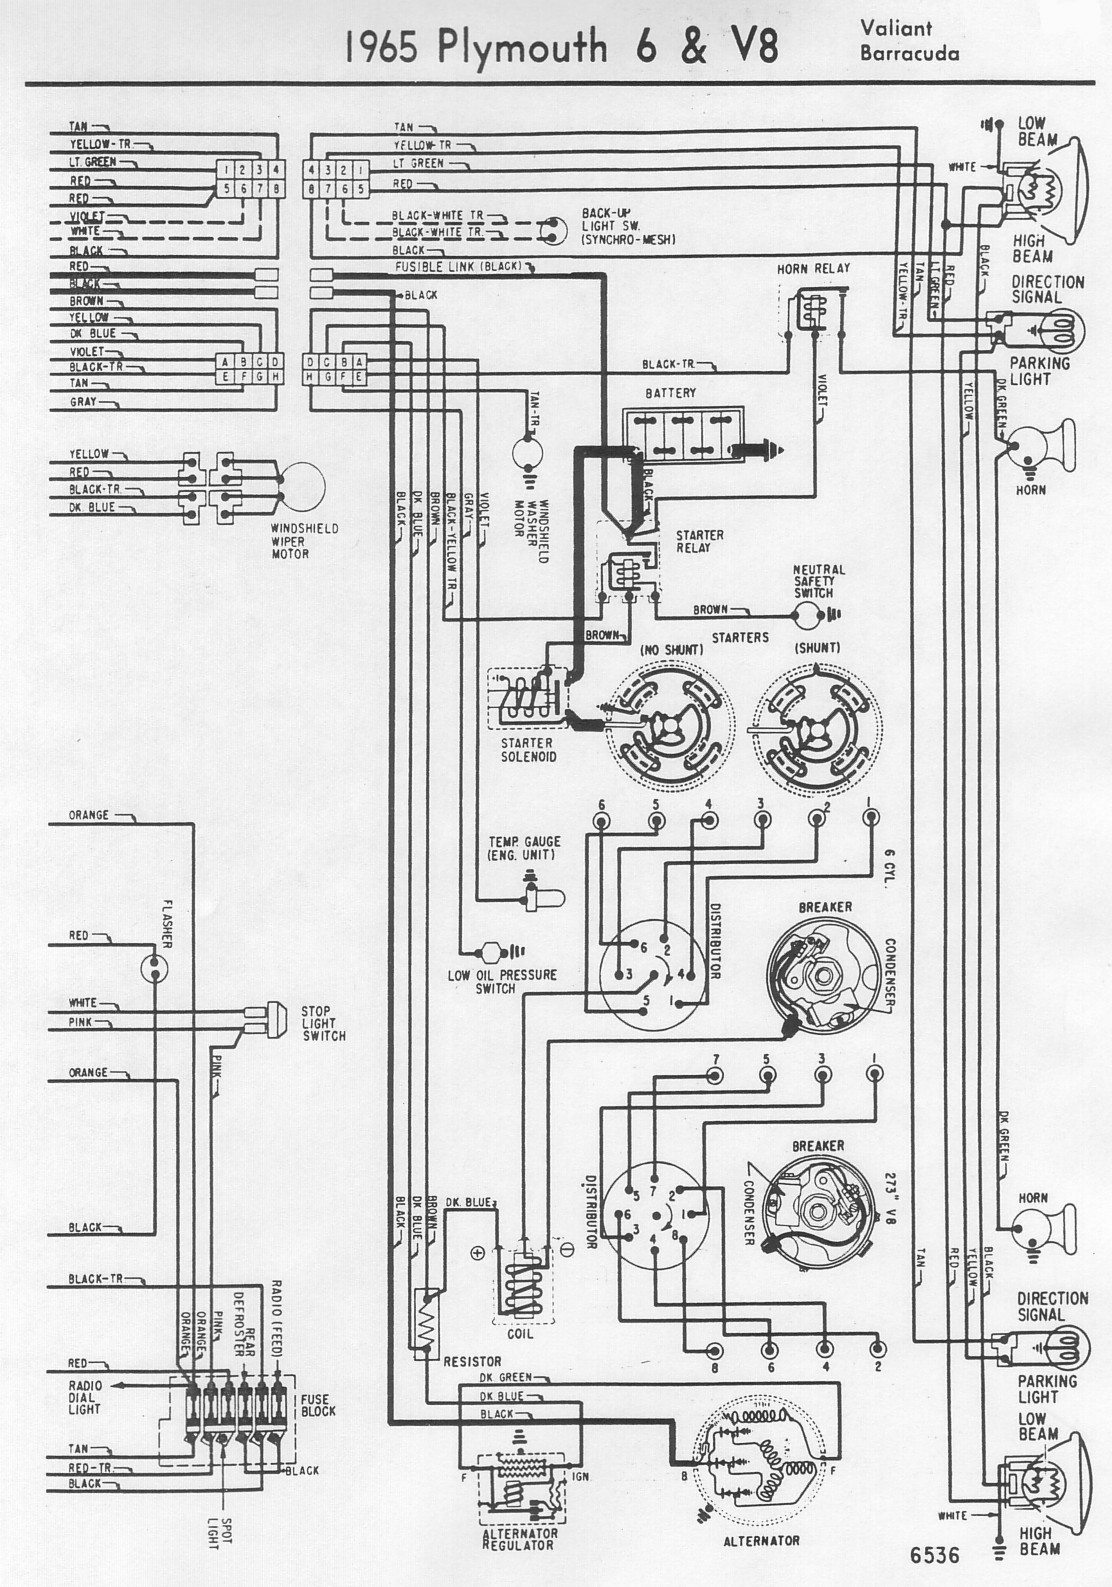 1970 Plymouth Duster Ignition Wiring Diagram Free Mopar Detailed Rh 5 2 Gastspiel Gerhartz De 1974 Dodge Dart Steering Column